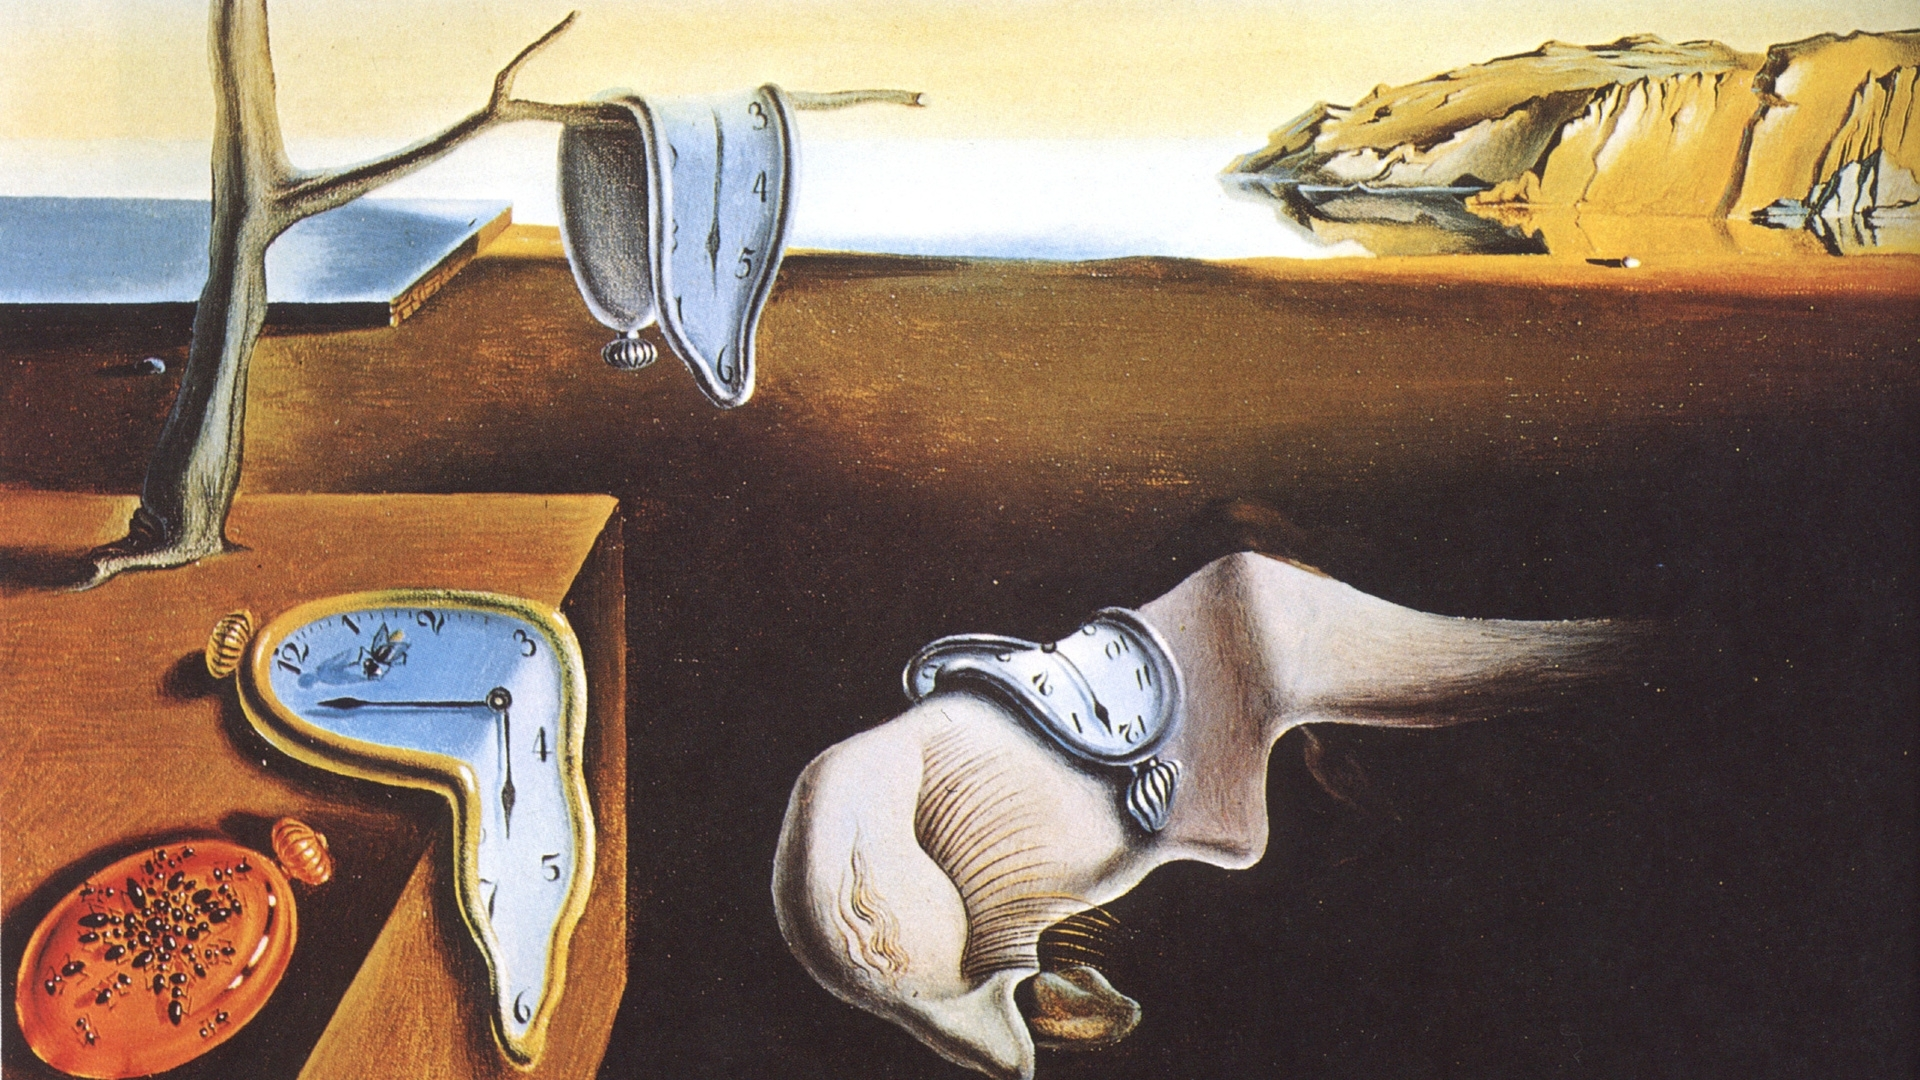 1920x1080 salvador dali, 1931, the persistence of memory, salvador